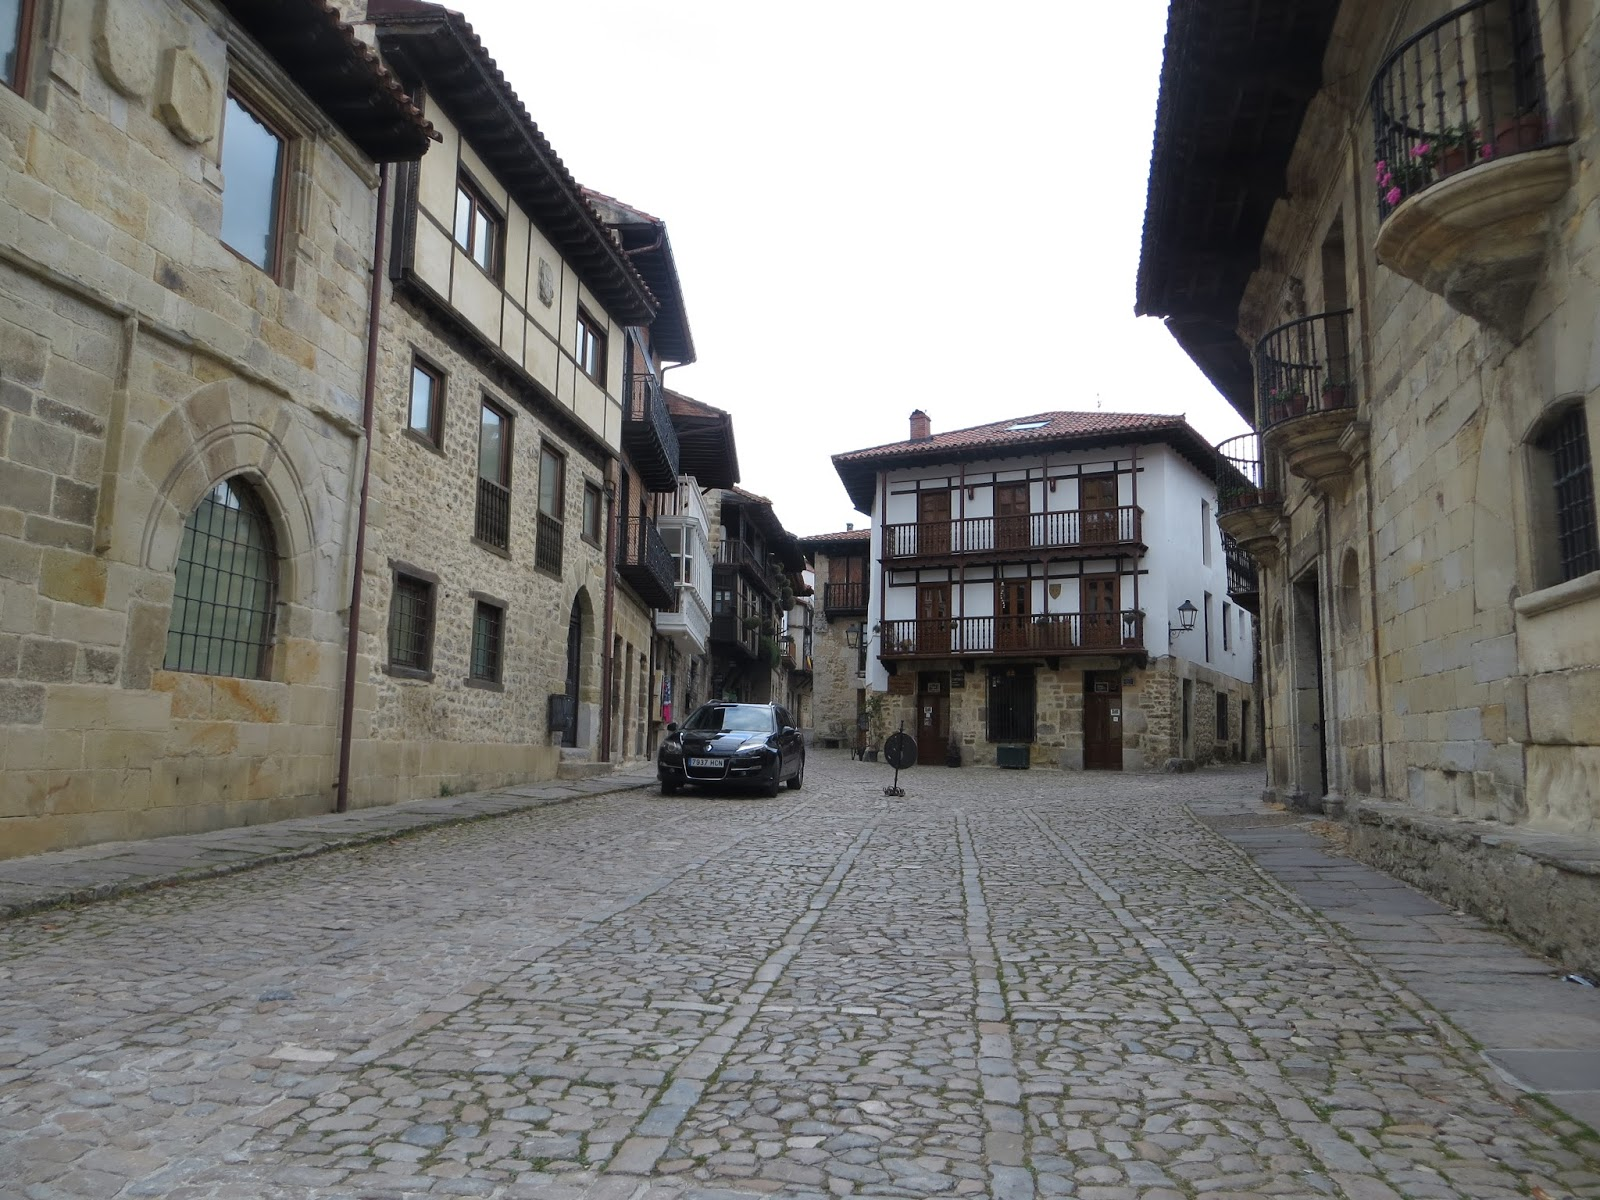 Travel Pennies Santillana del Mar, the Spanish town which time forgot